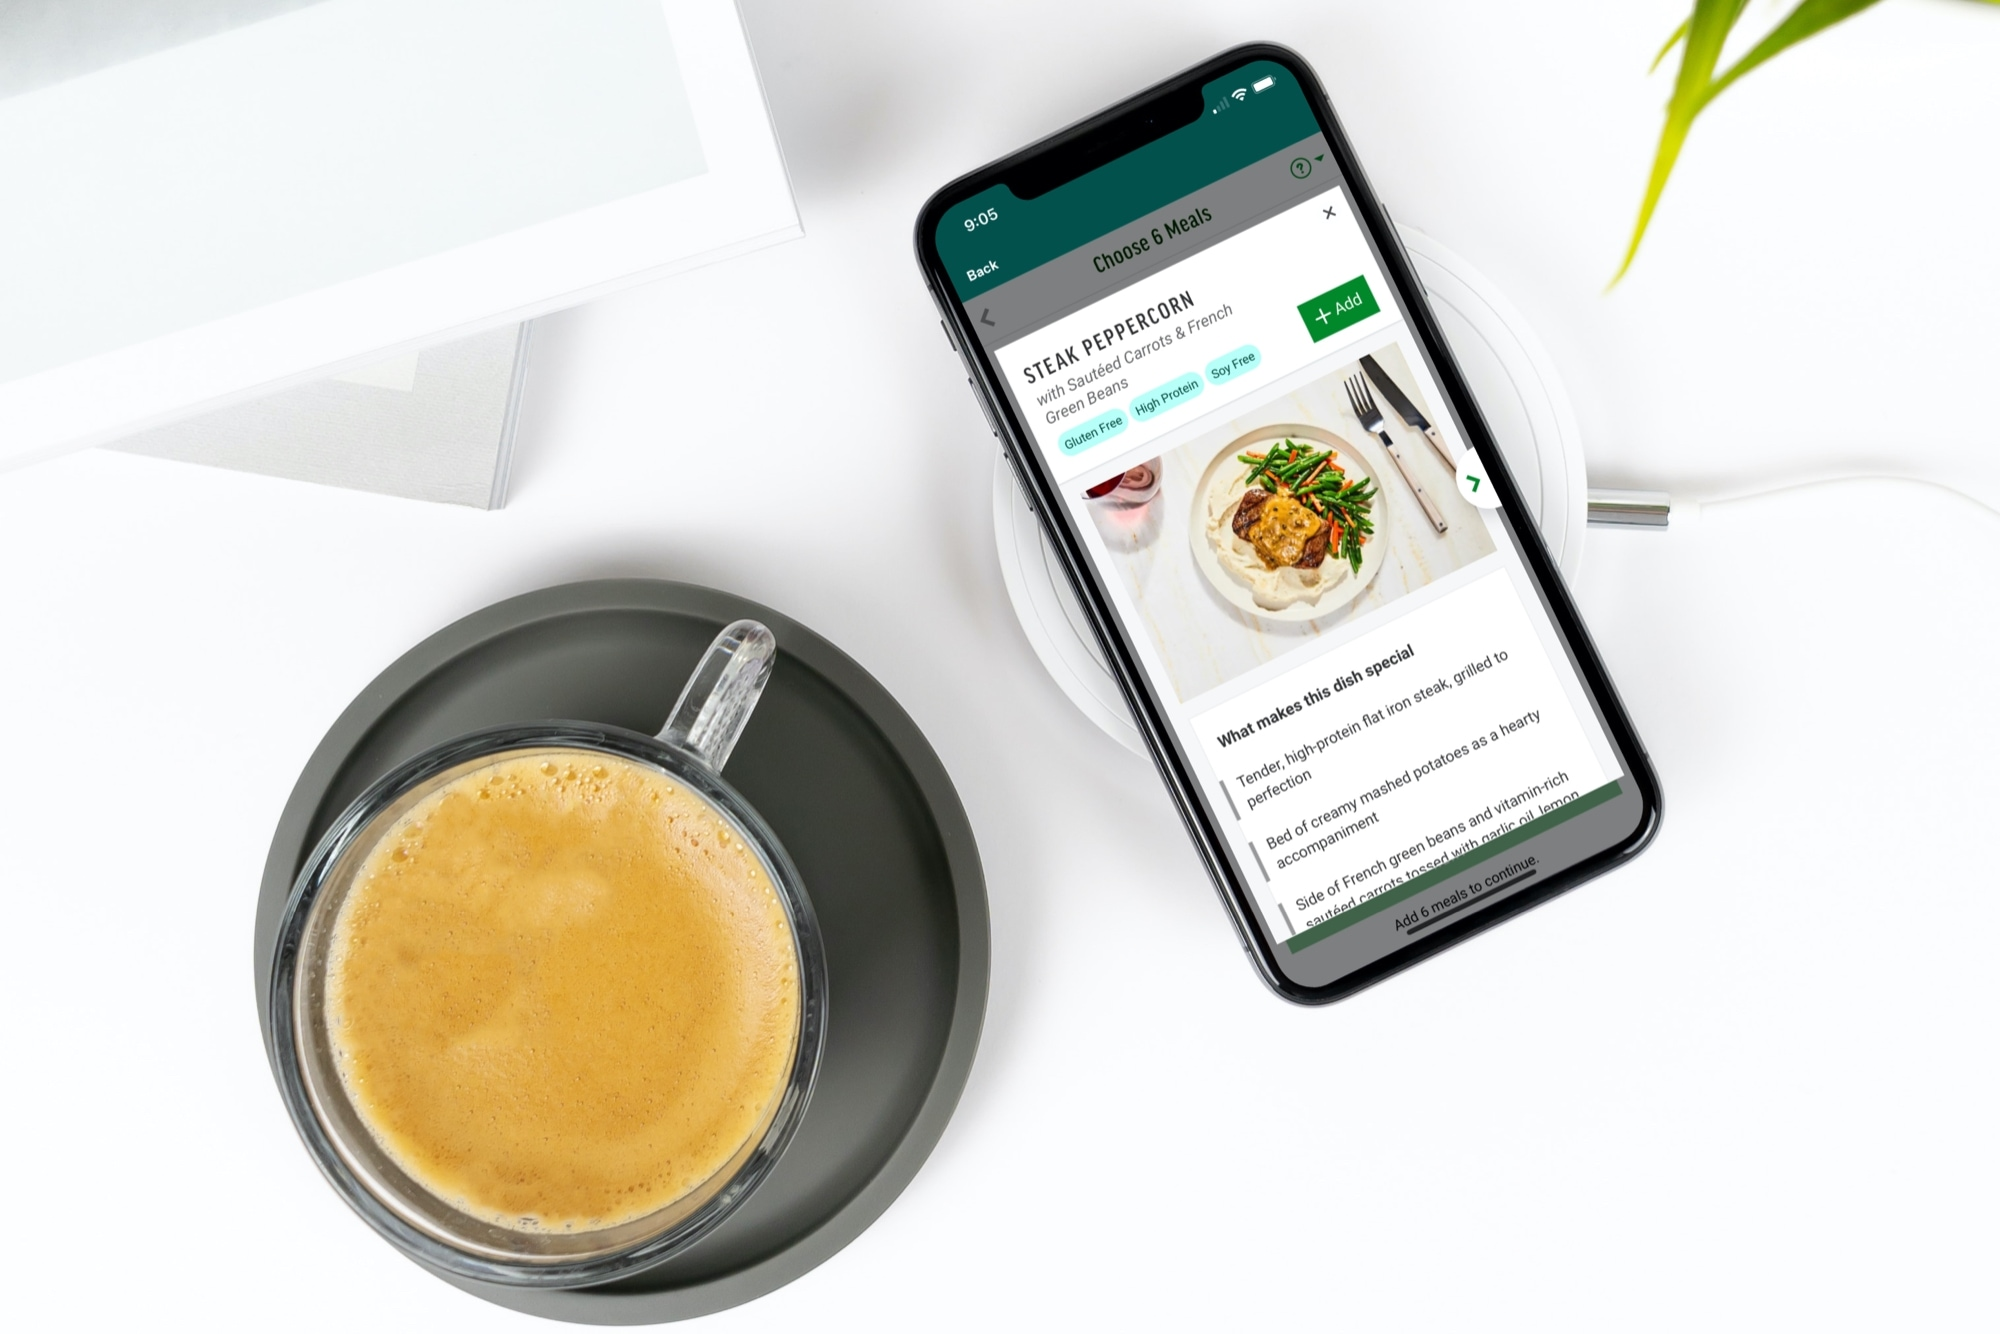 Meal Kit Delivery Apps for iPhone - Freshly